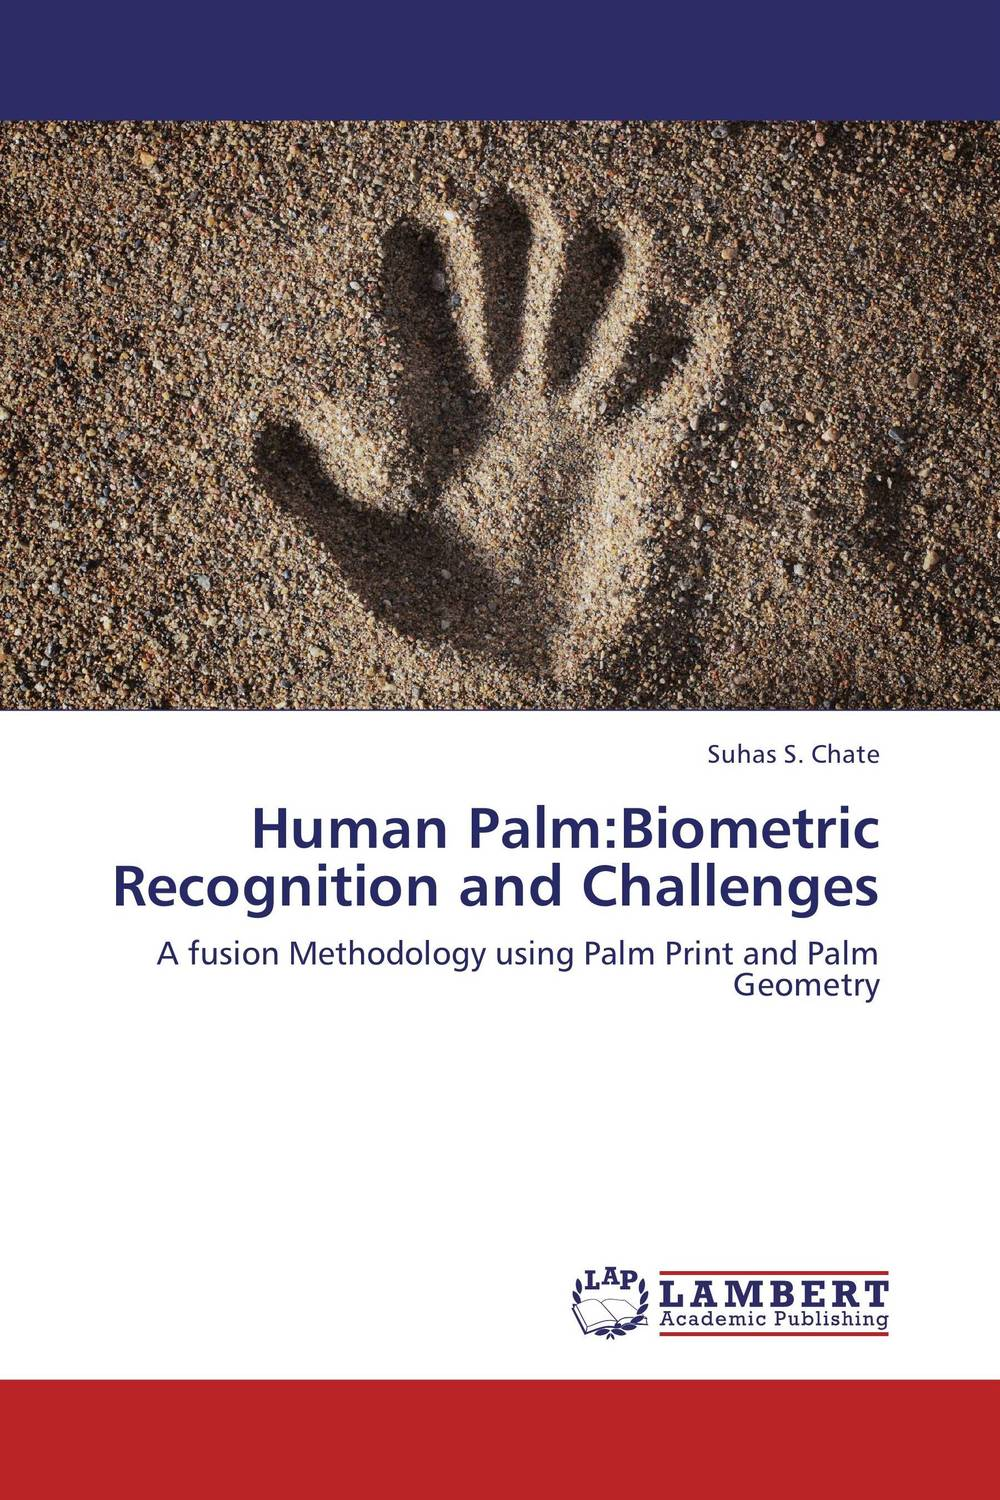 Human Palm:Biometric Recognition and Challenges fingerprint authentication based on statistical features